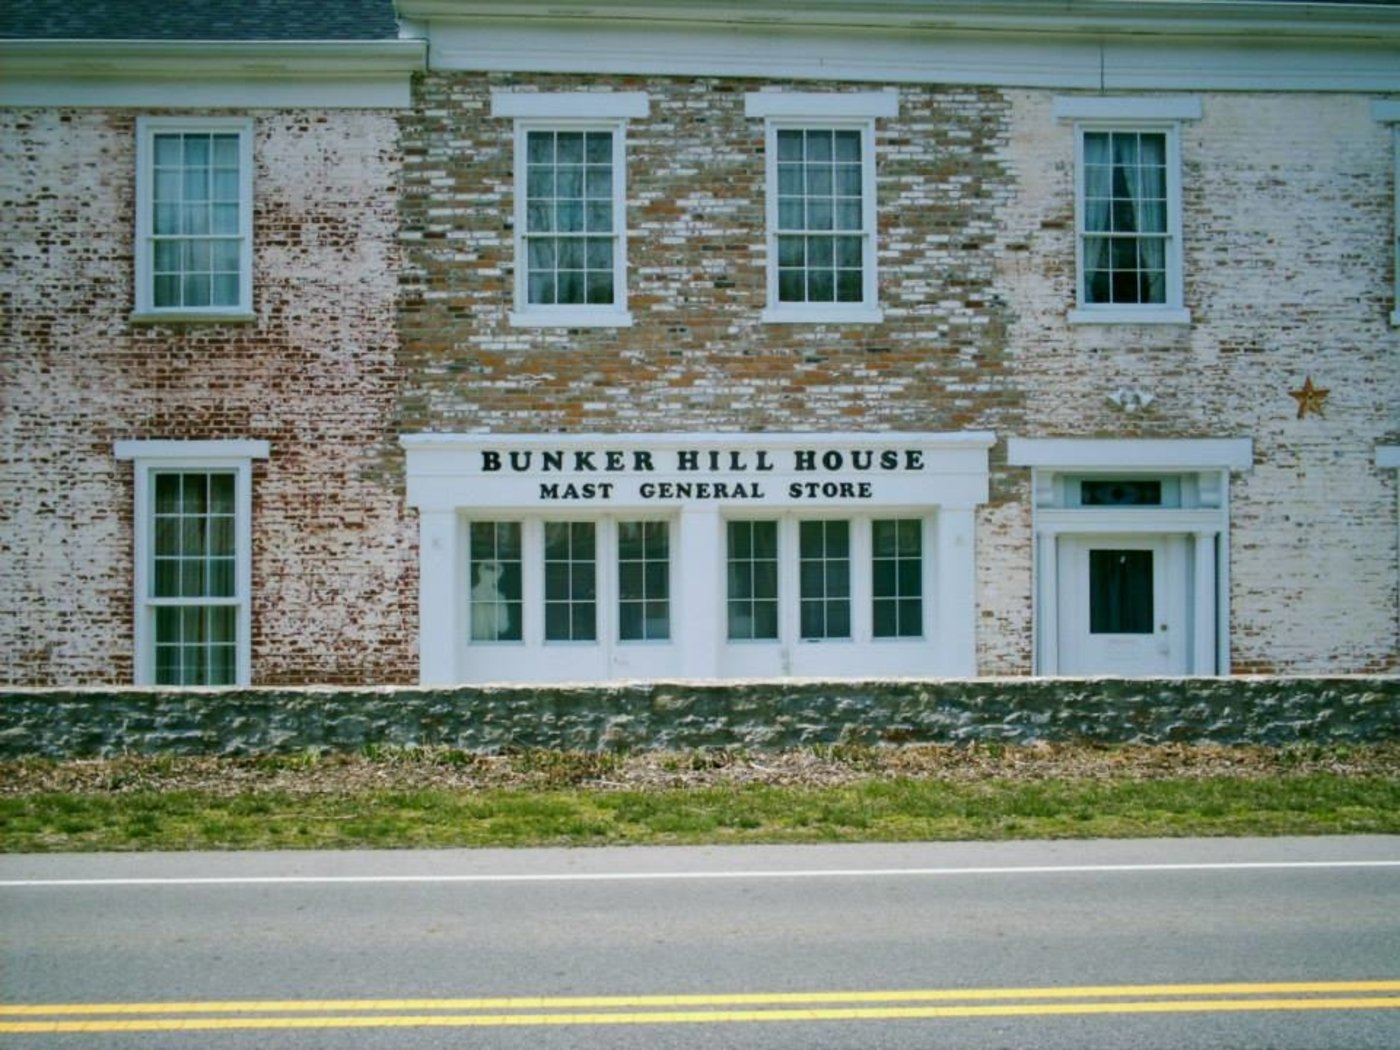 The Mast General Store was established to attract the growing population in this area.